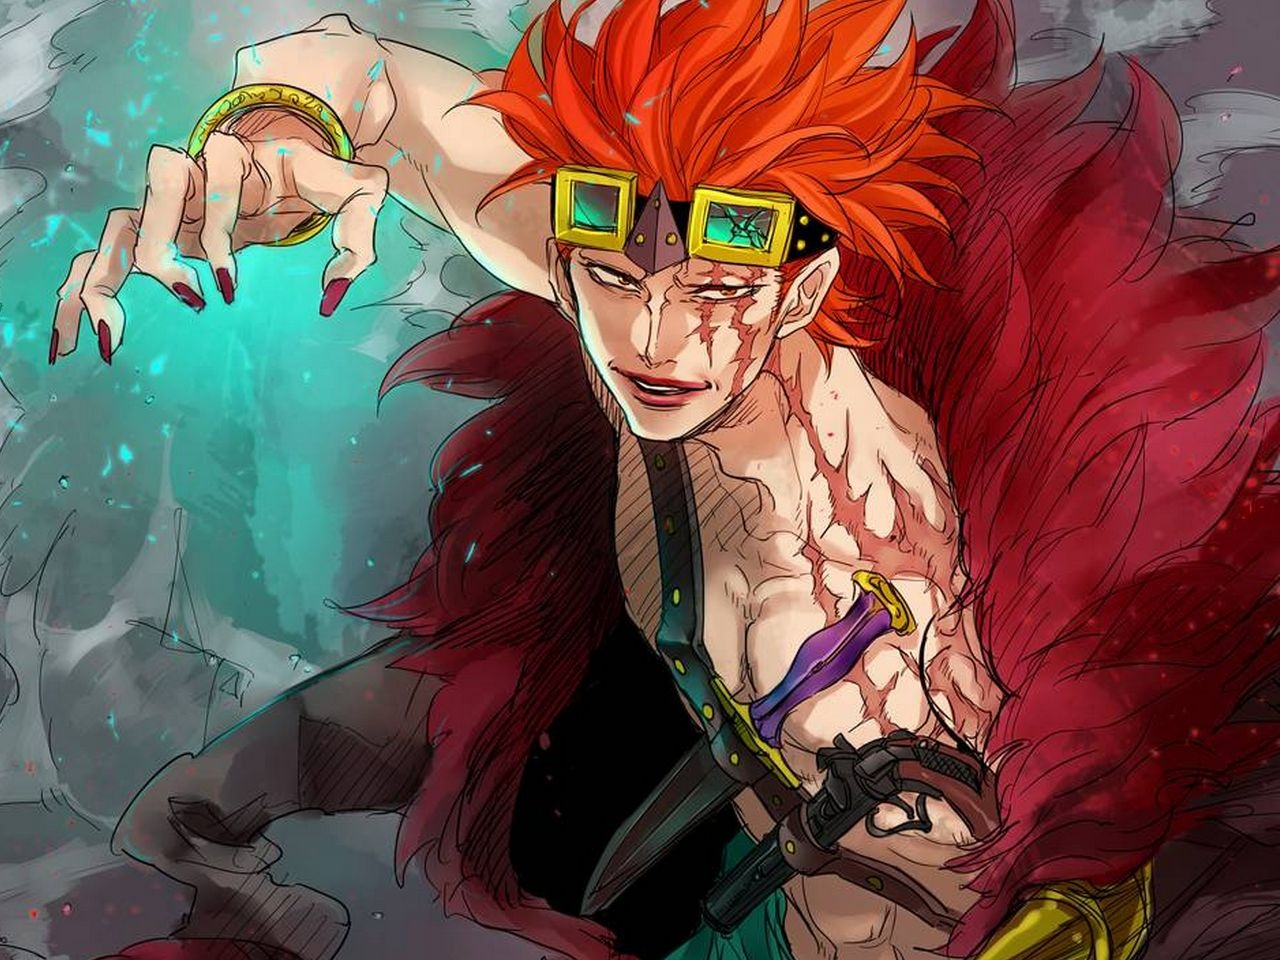 34196 download wallpaper Anime, Men screensavers and pictures for free